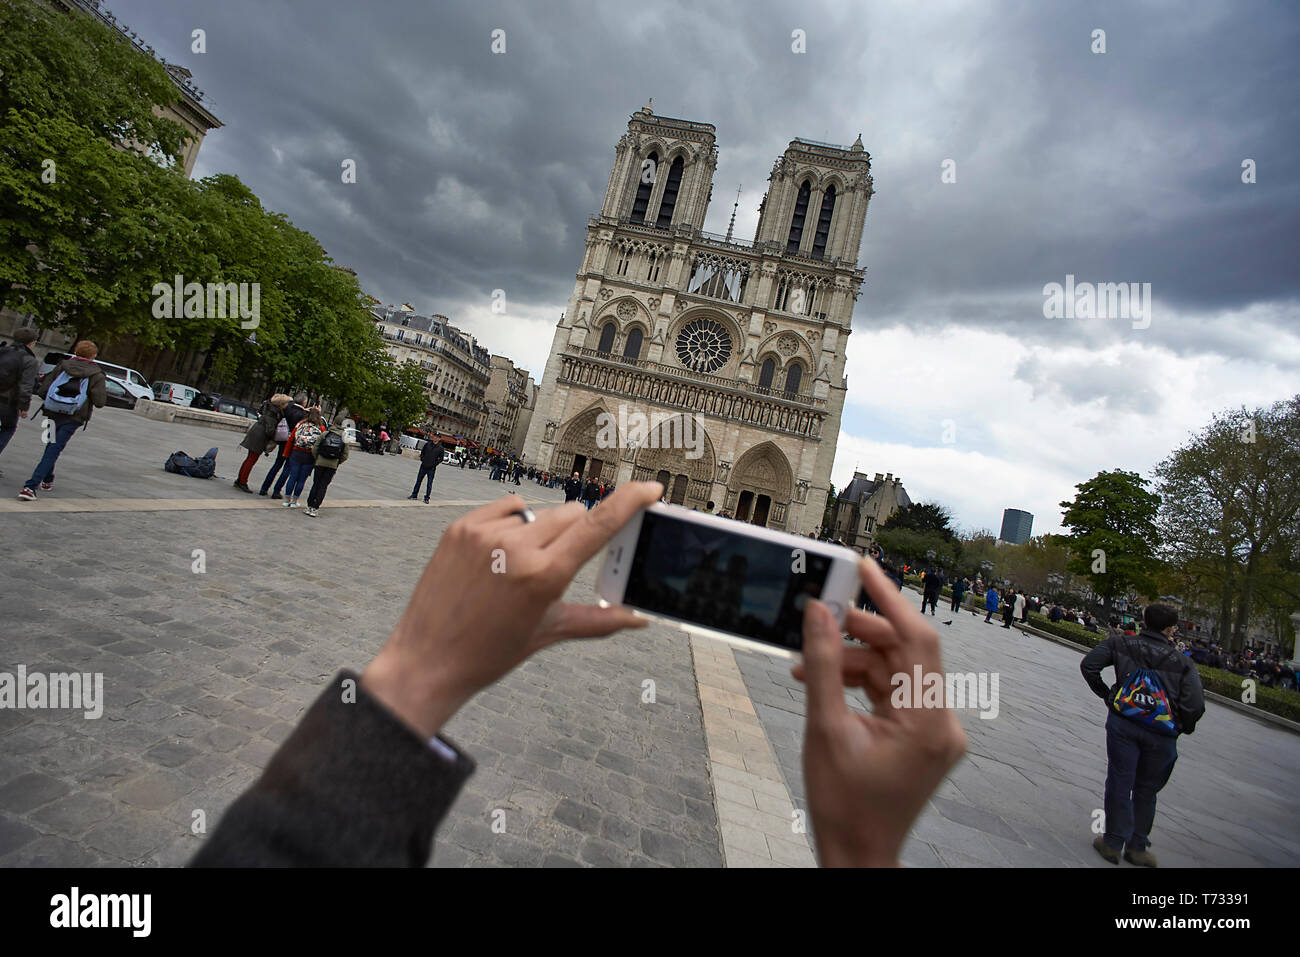 POV image of a woman taking pictures using her mobile phone of the Notre Dame cathedral in Paris with dark clouds overhead - Stock Image